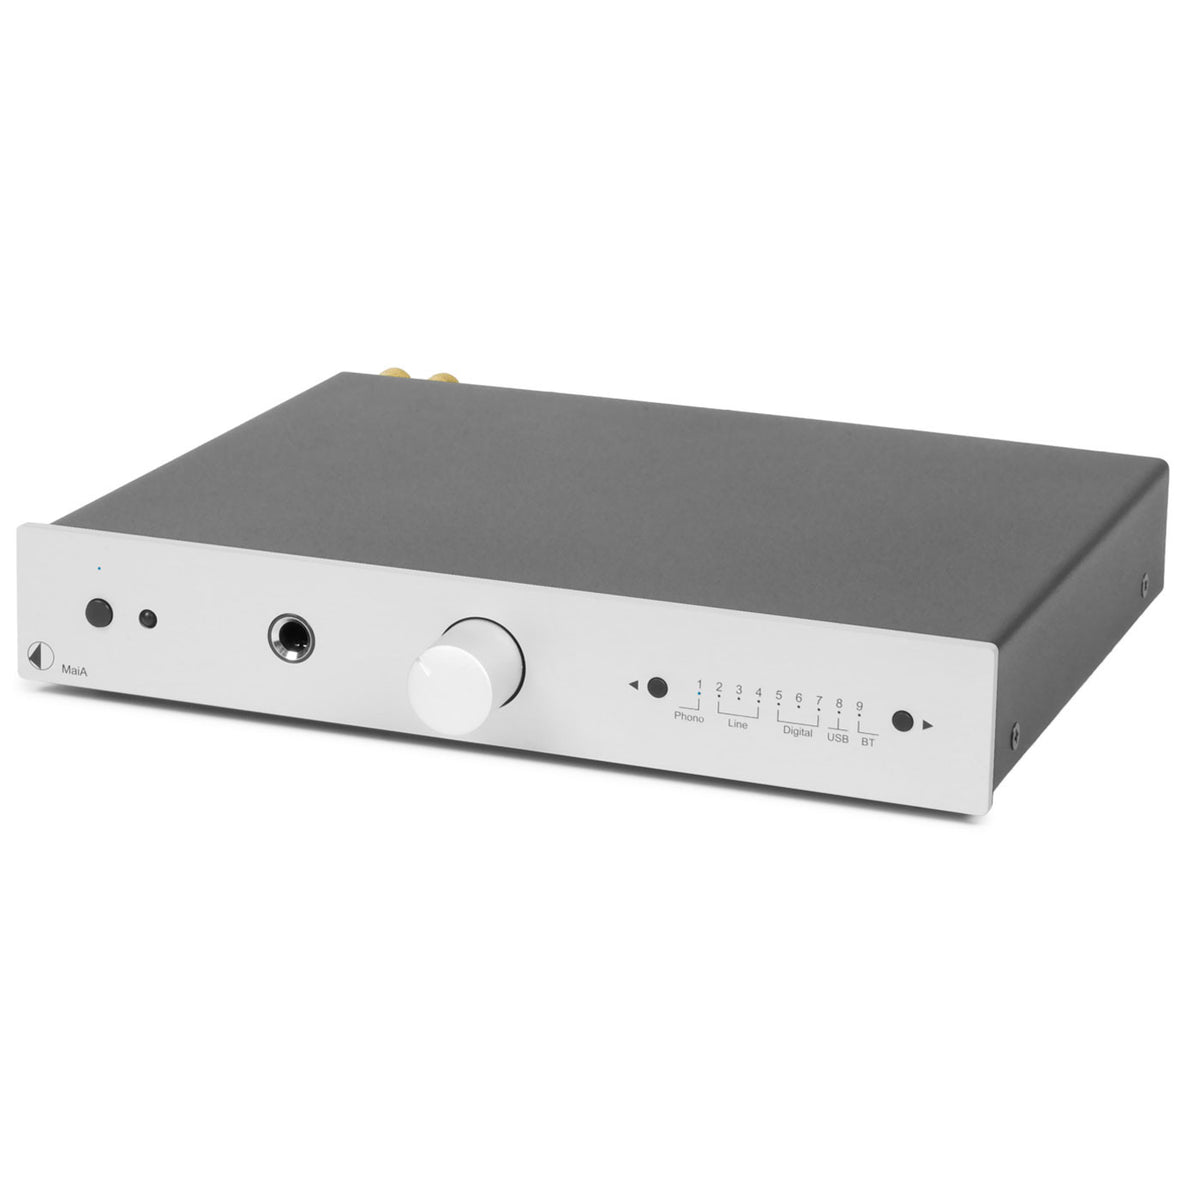 Pro-Ject: Stereo Box S MaiA Integrated Amplifier + Bluetooth - Silver